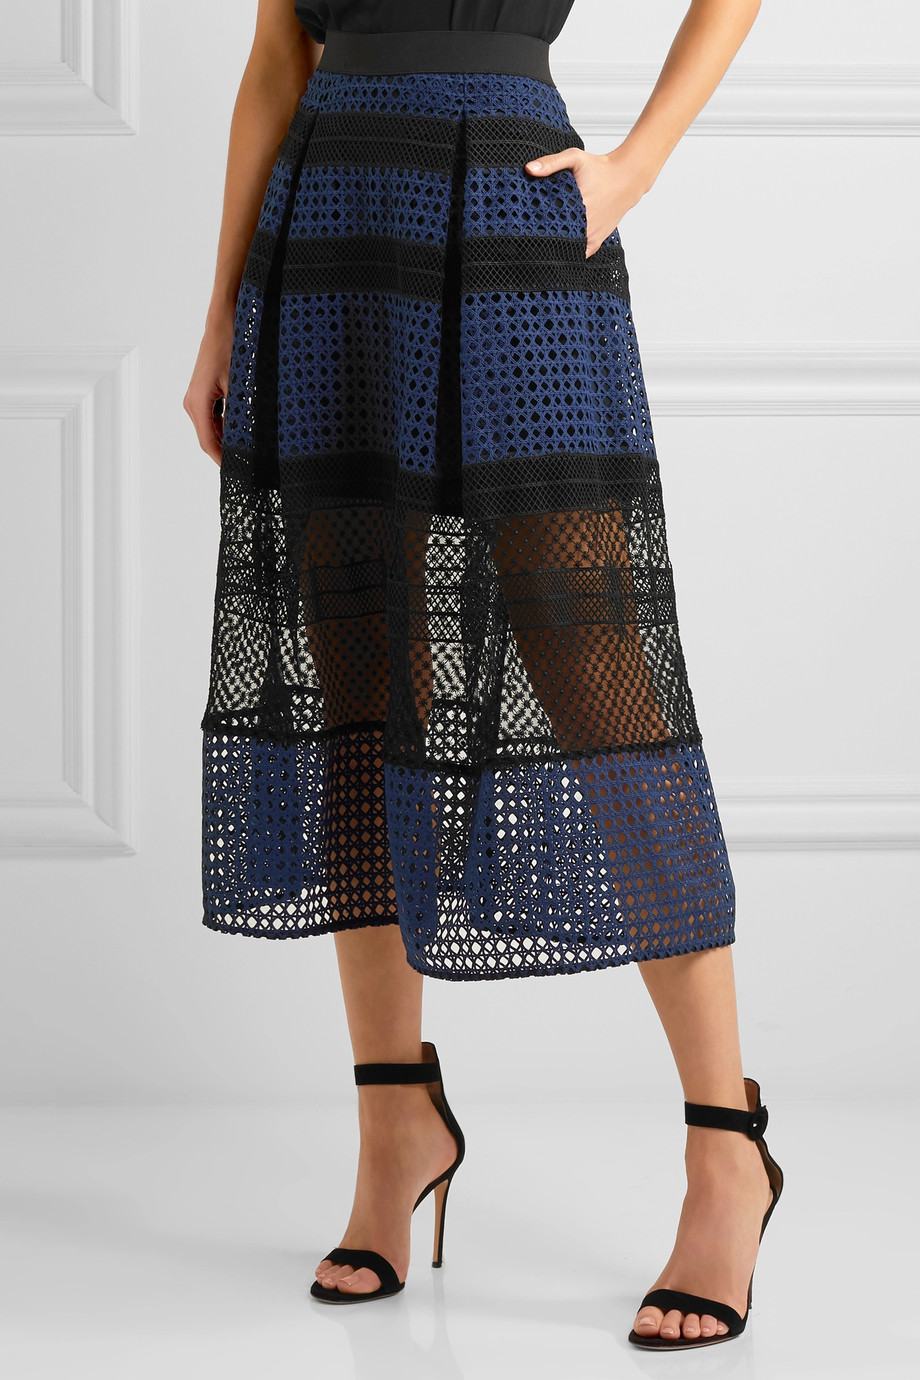 SELF-PORTRAIT Paneled guipure lace midi skirt, 4th of July 2017 outfit picks by KOKET 4th of july outfit Chic 4th of July Outfit Ideas by KOKET 889624 fr xl